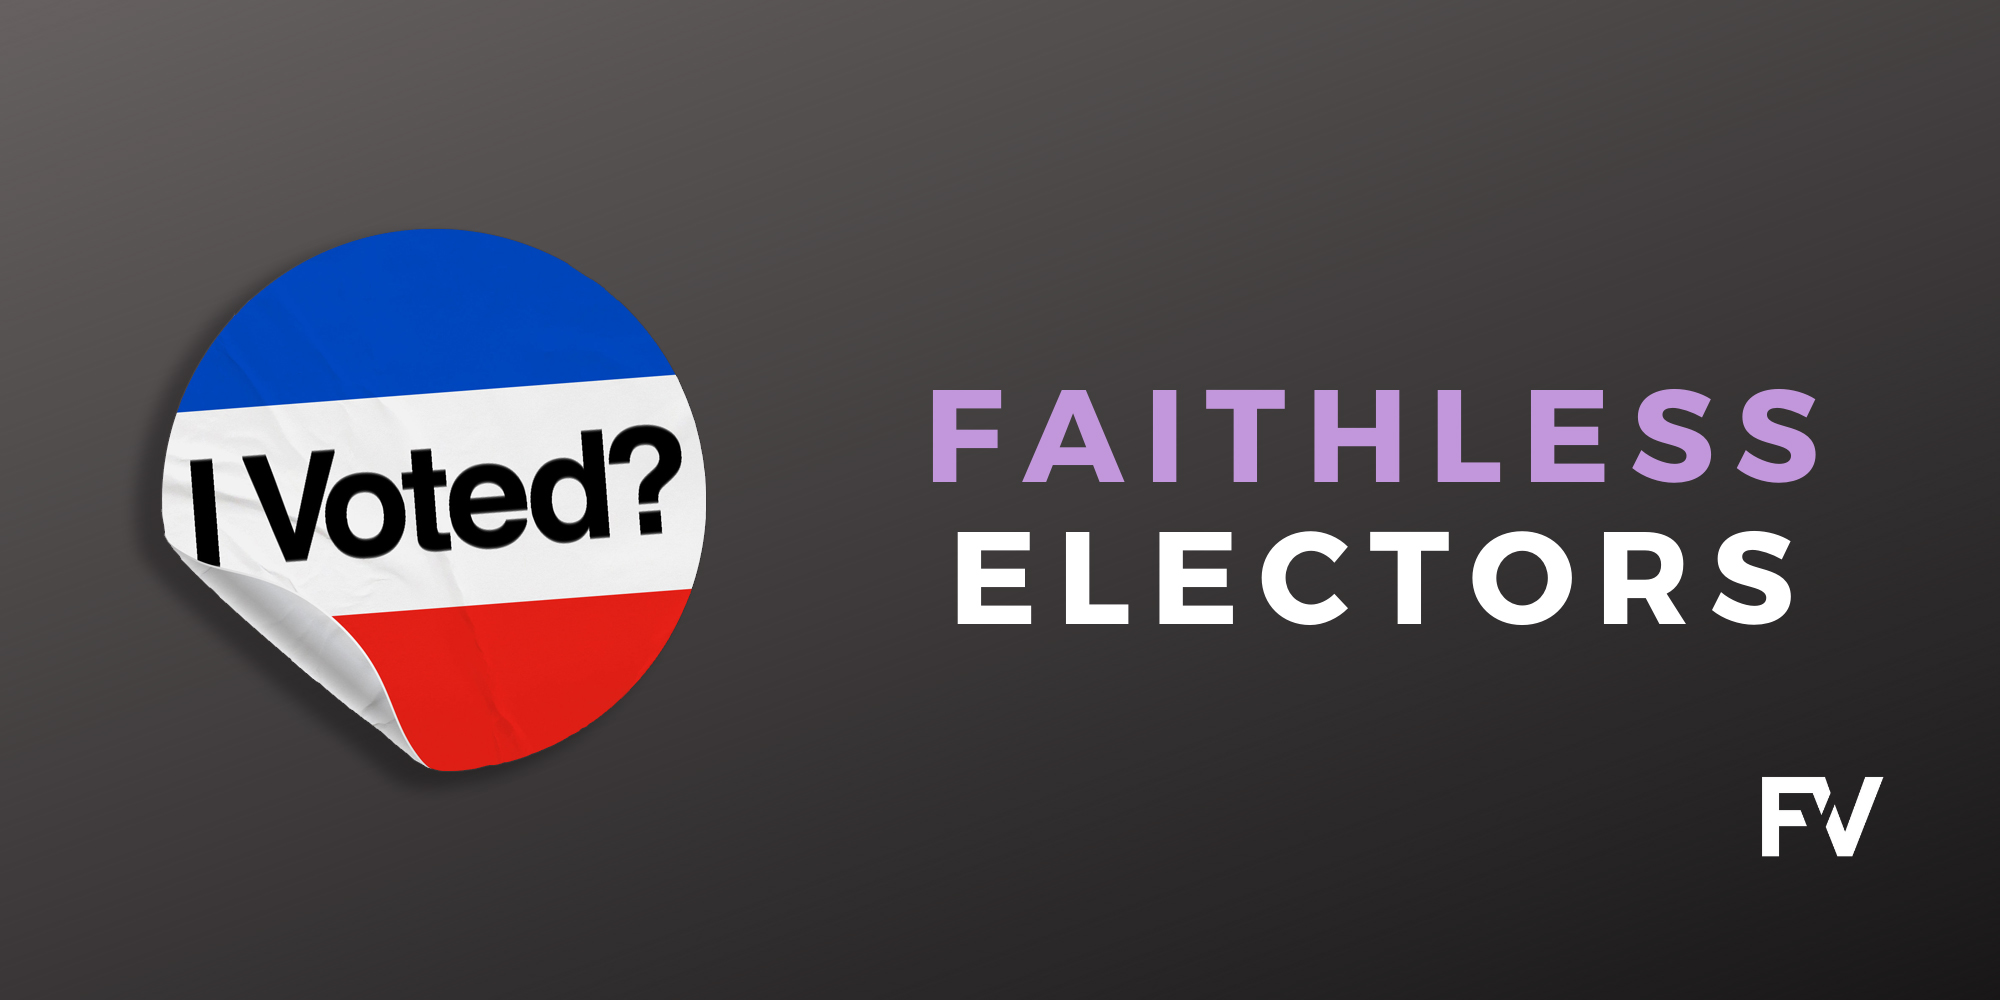 Supreme Court Considers Faithless Elector Cases